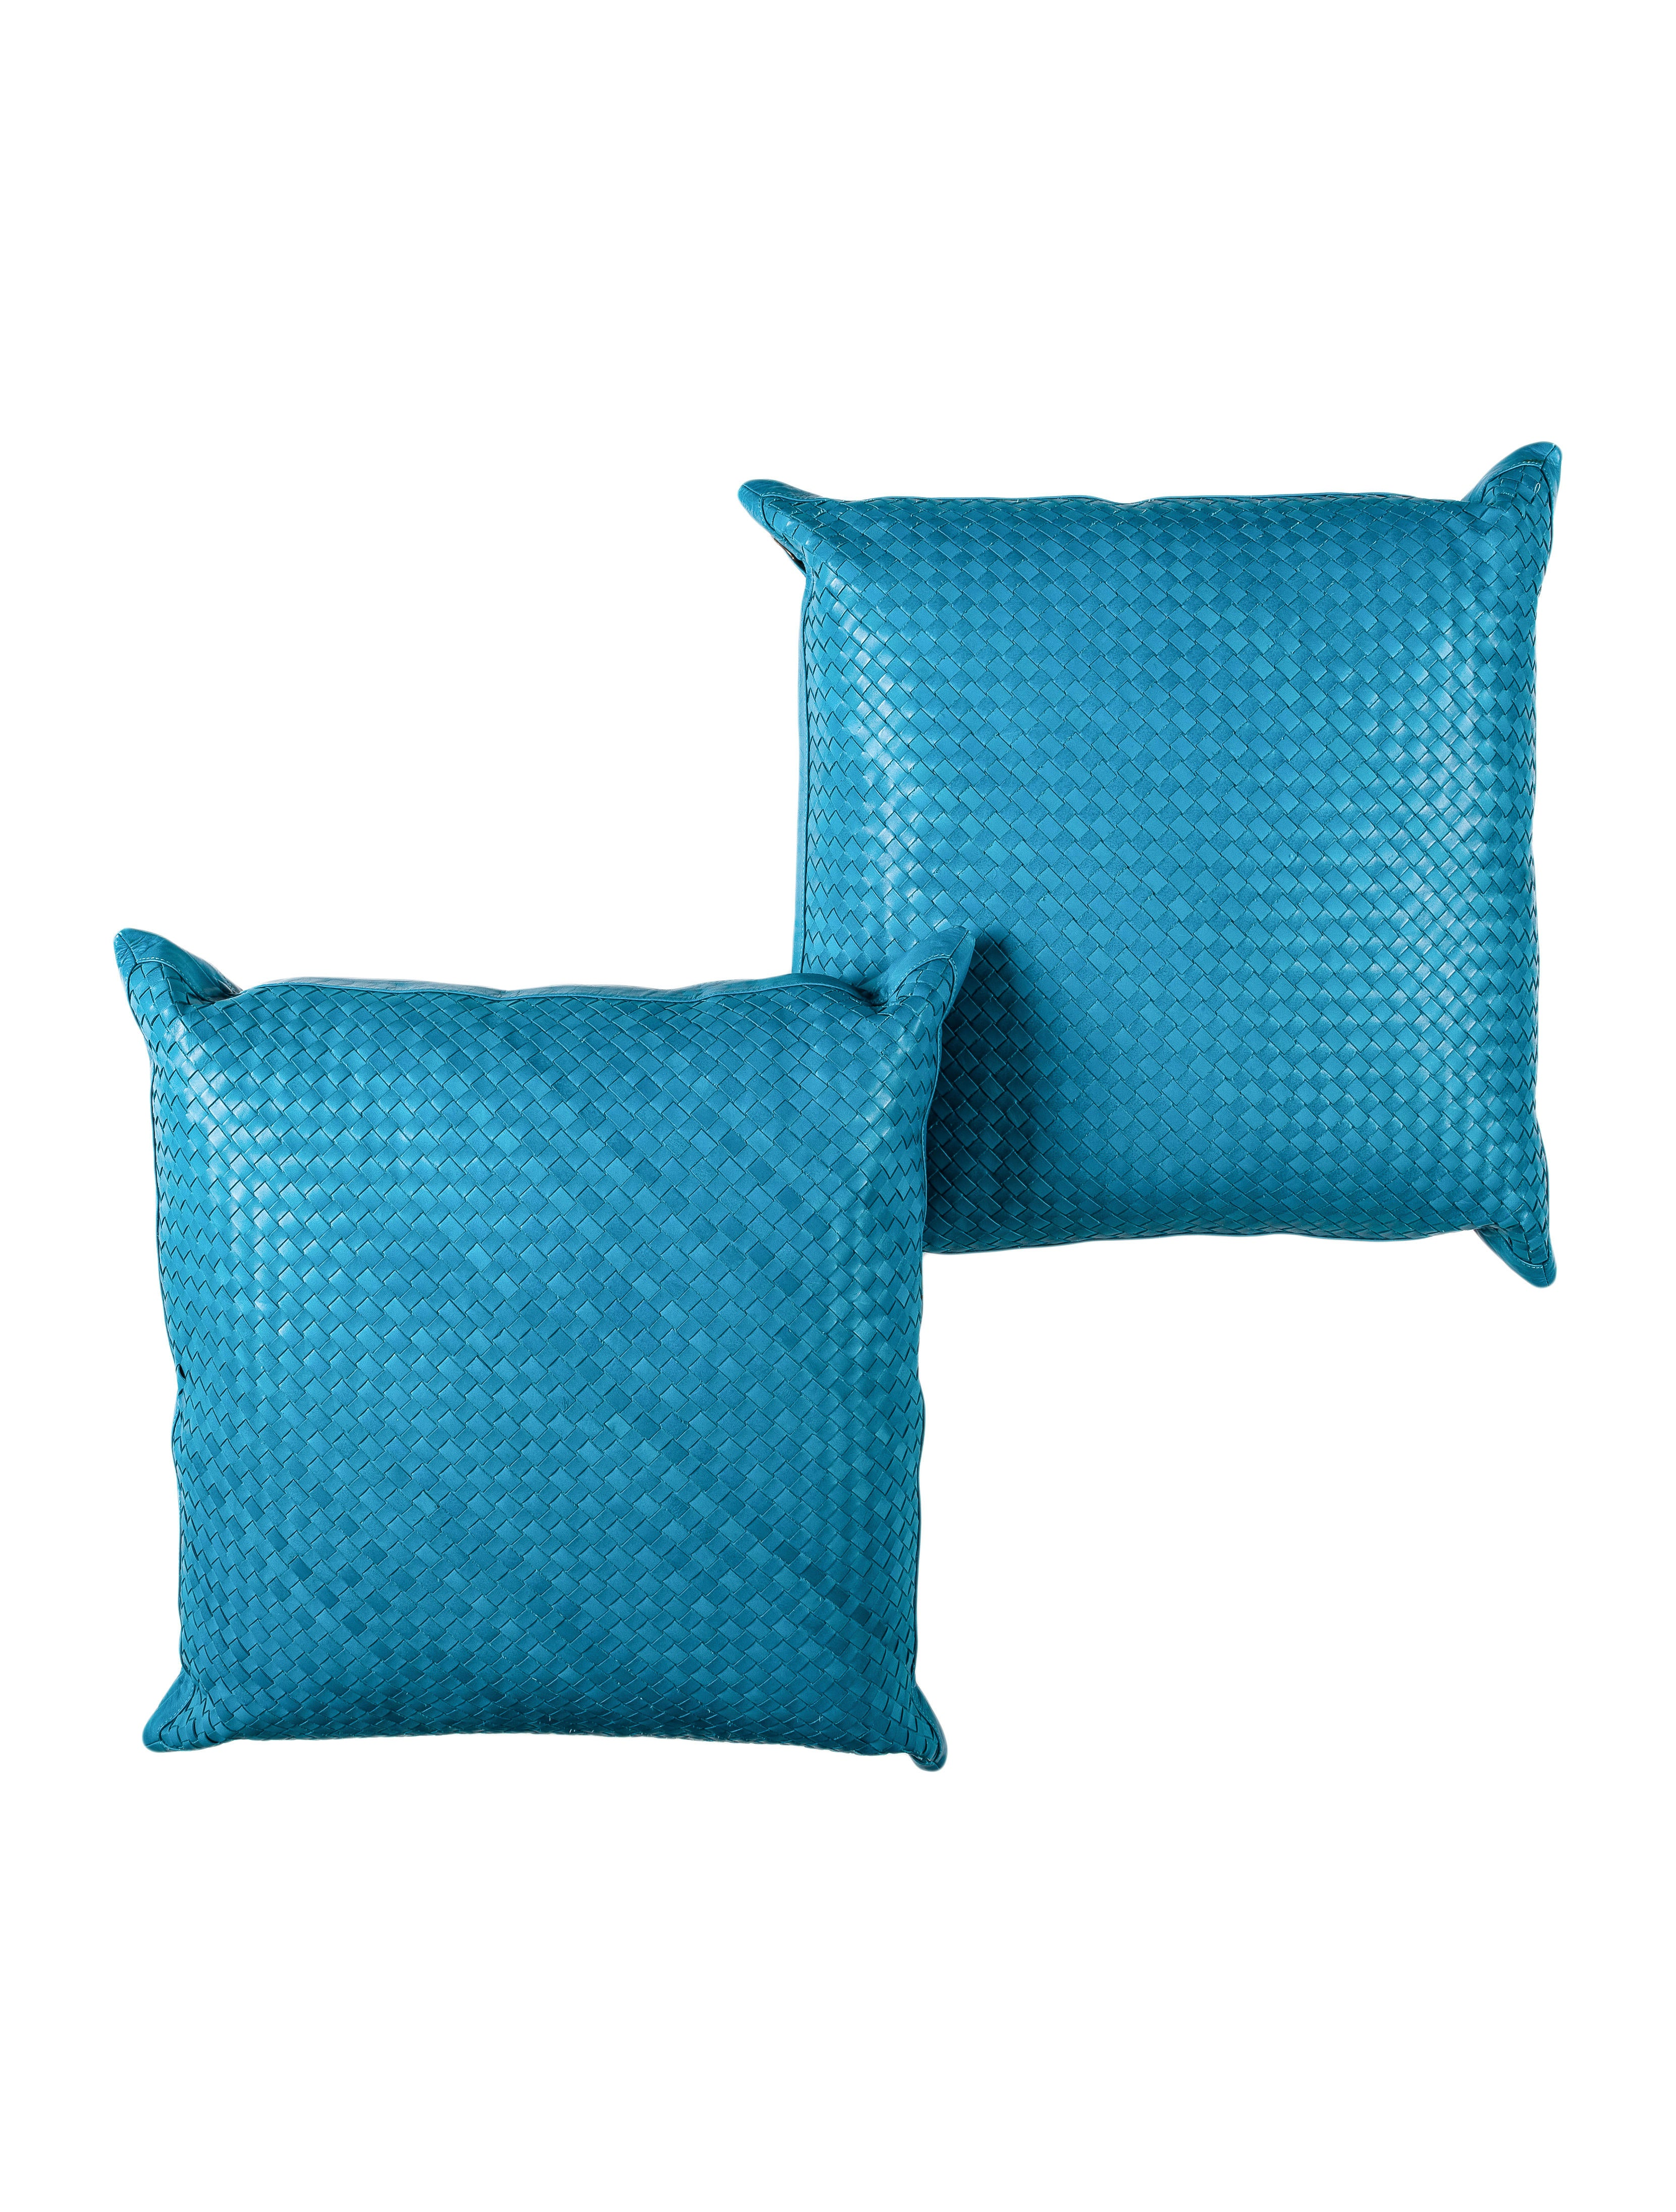 Lance Woven Leather Throw Pillow Set - Pillows And Throws - LCE20006 The RealReal